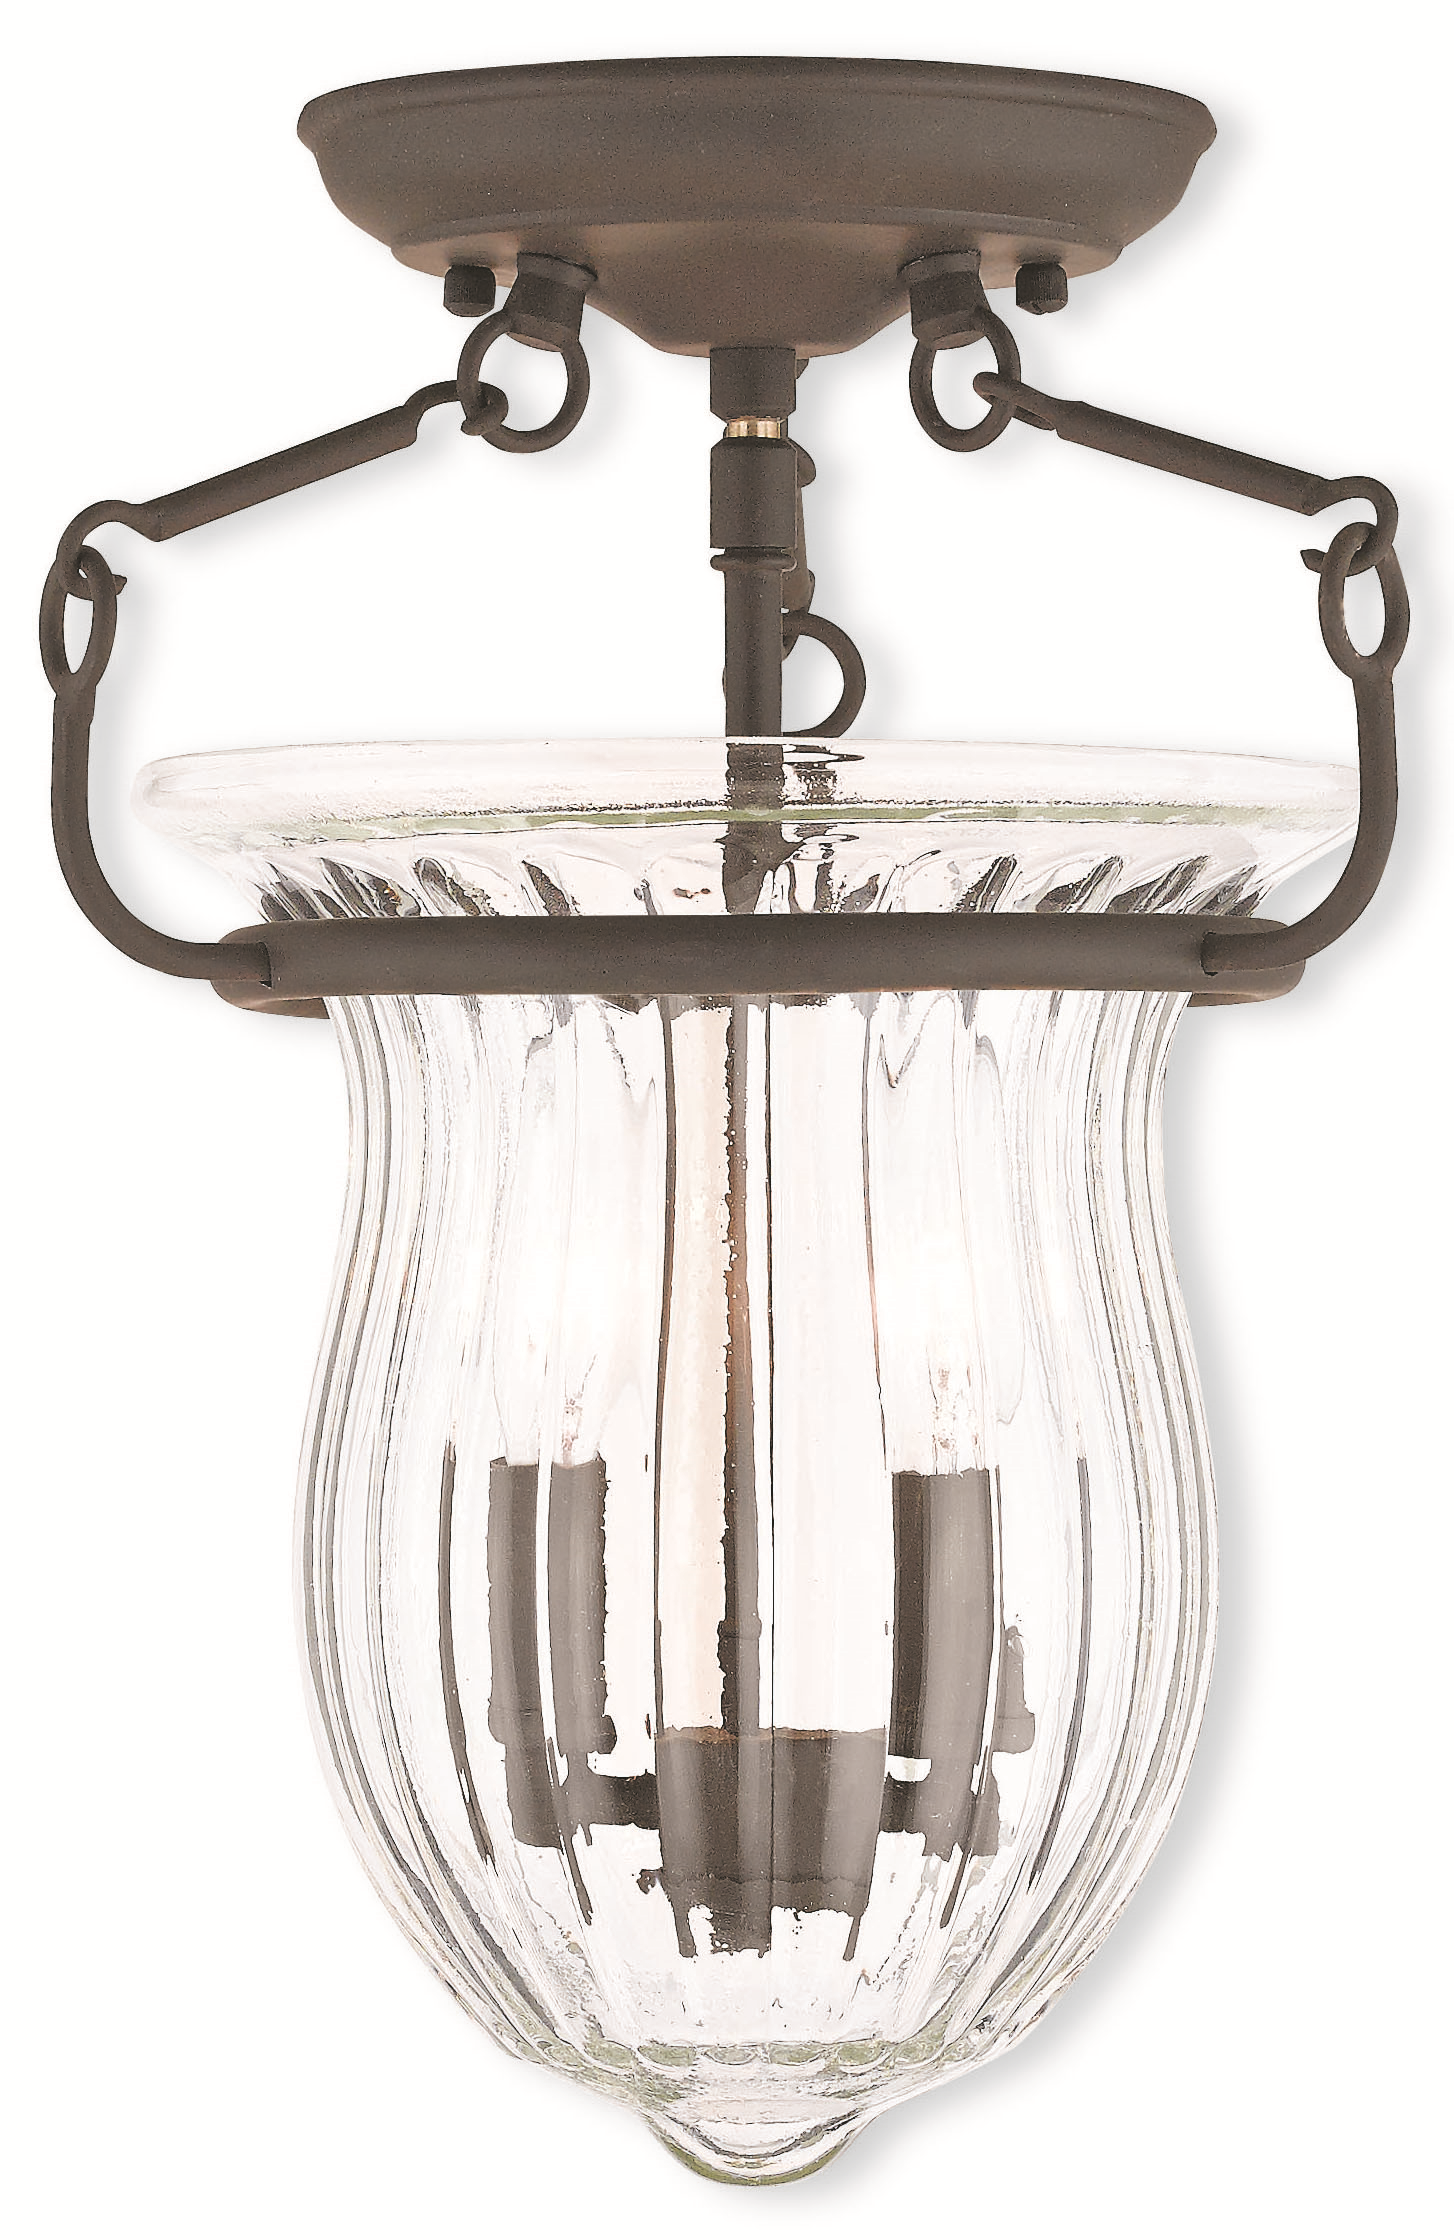 Wonderful Livex Lighting For Home Lighting Ideas: Awesome Livex Lighting 50941 07 Flush Mount From The Andover Collection For Home Lighting Ideas